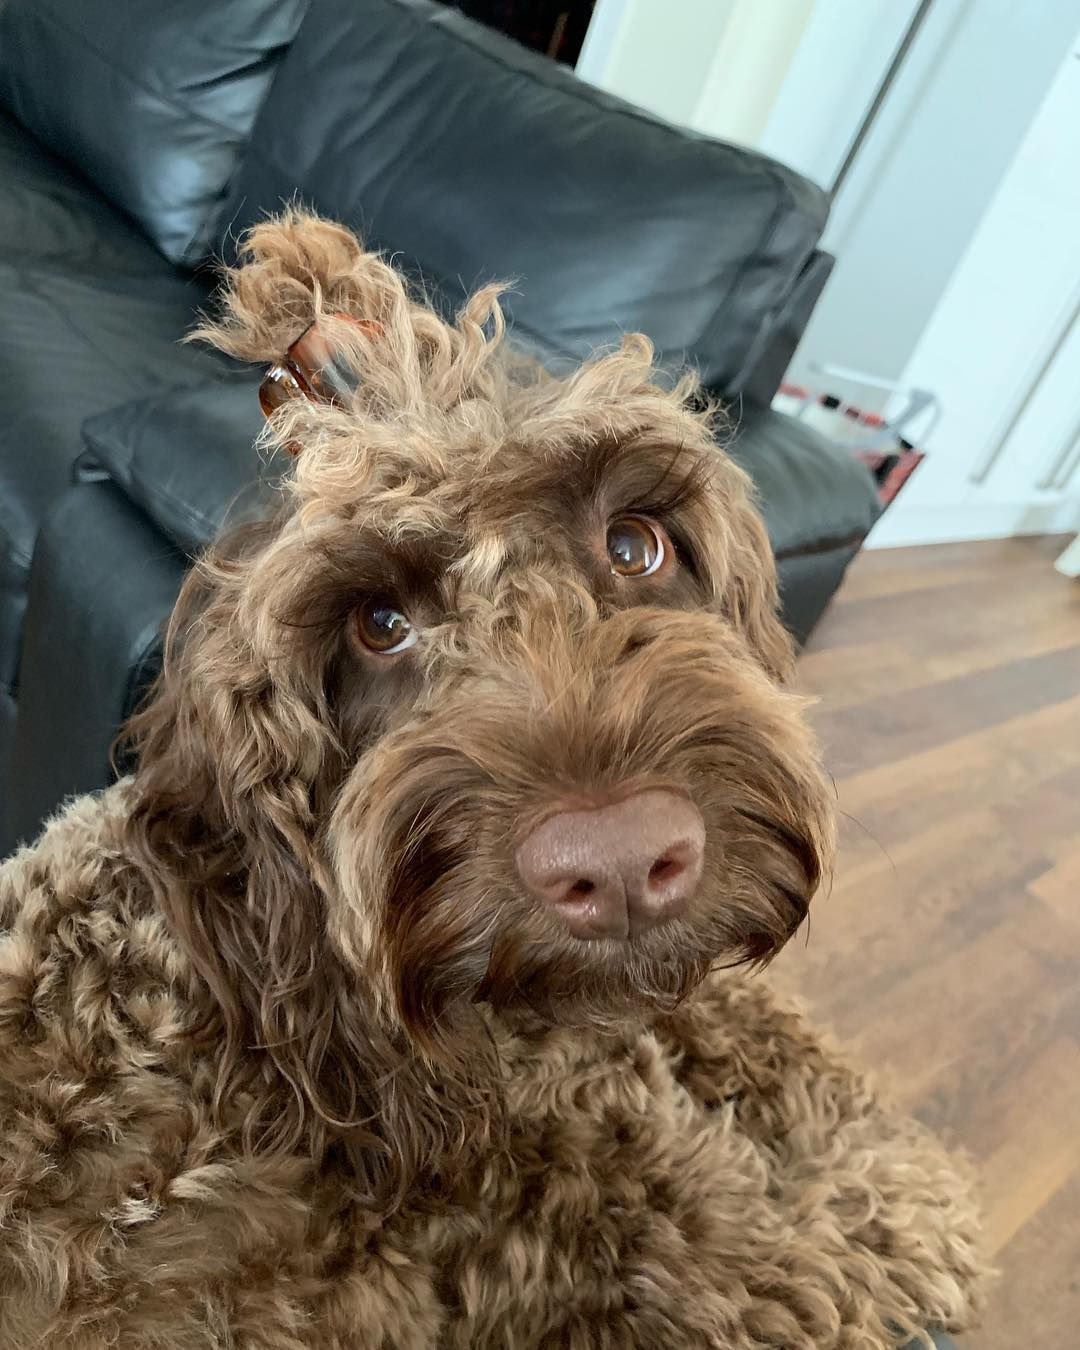 New The 10 Best Home Decor With Pictures I Know My Hair On My Noggin Is So Long Mum For A Laugh Cli Sproodle Puppies Cockapoo Puppies Springer Puppies